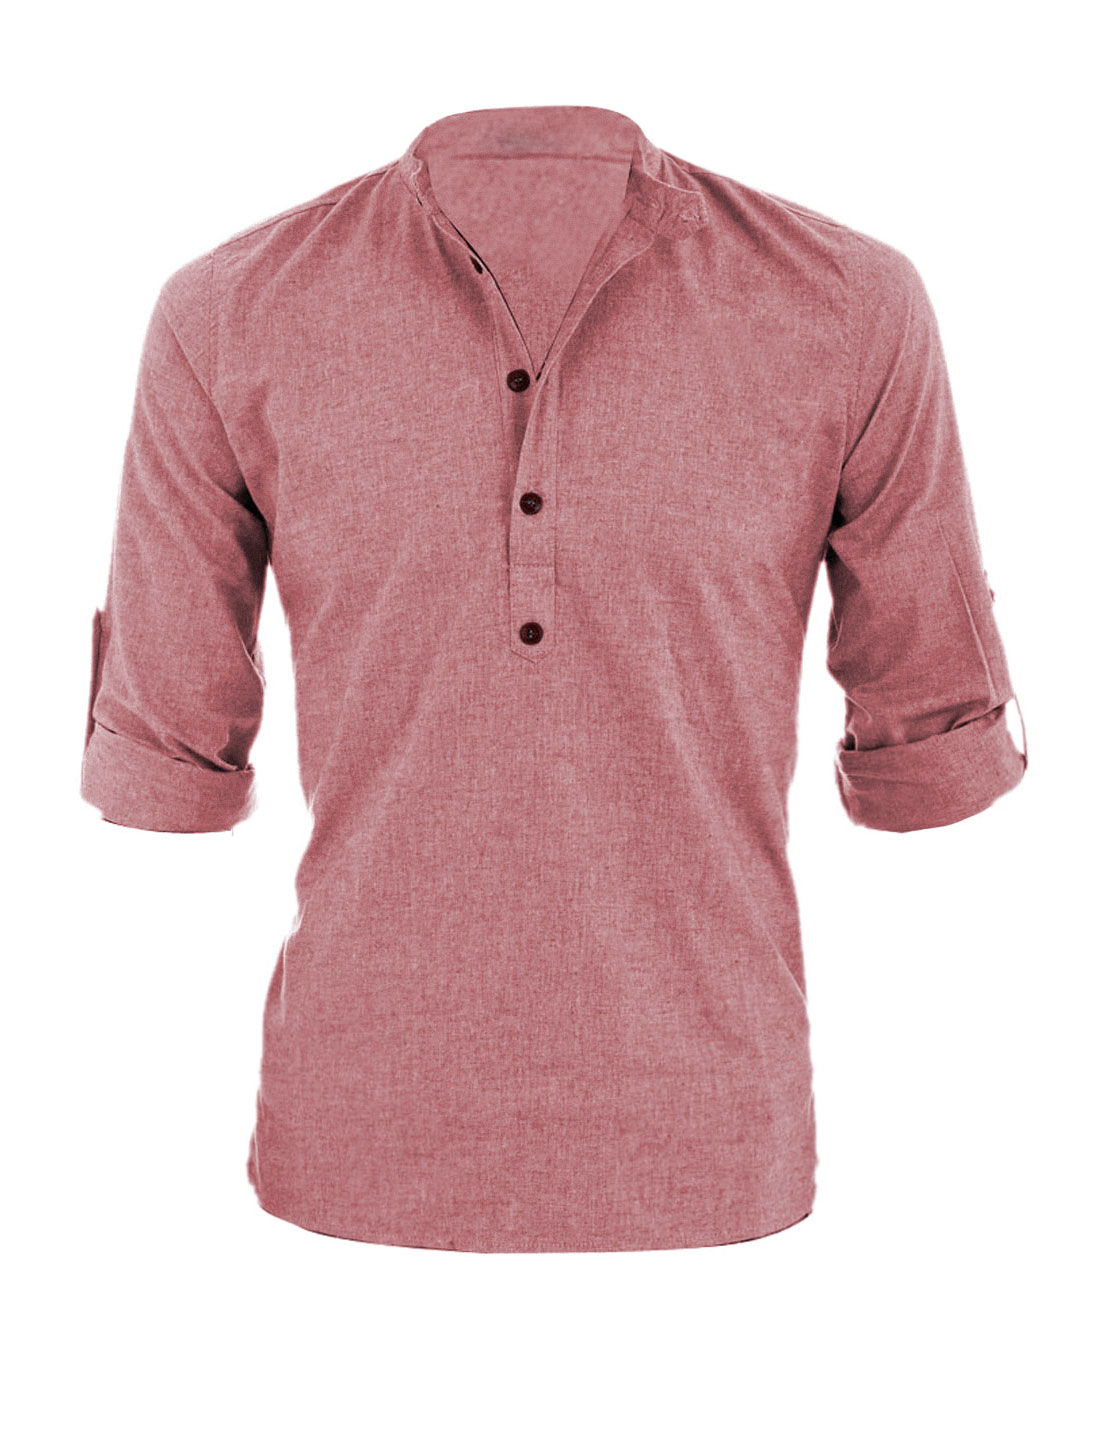 Men Half Button Closure Roll Up Sleeves Casual Henley Shirt Red M